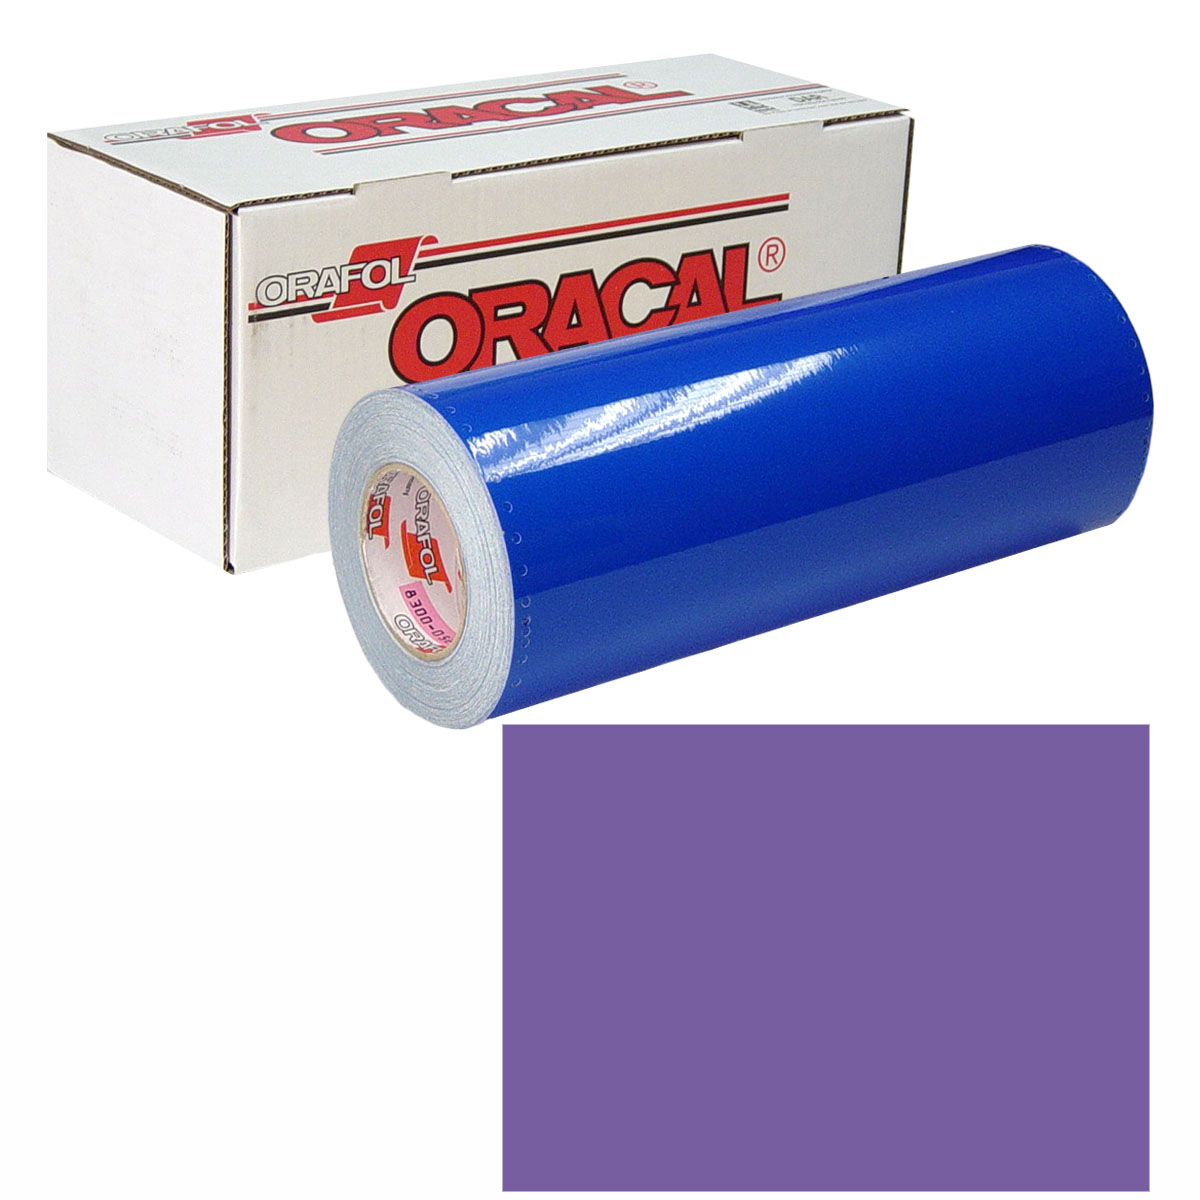 ORACAL 631 Unp 30in X 10yd 043 Lavender